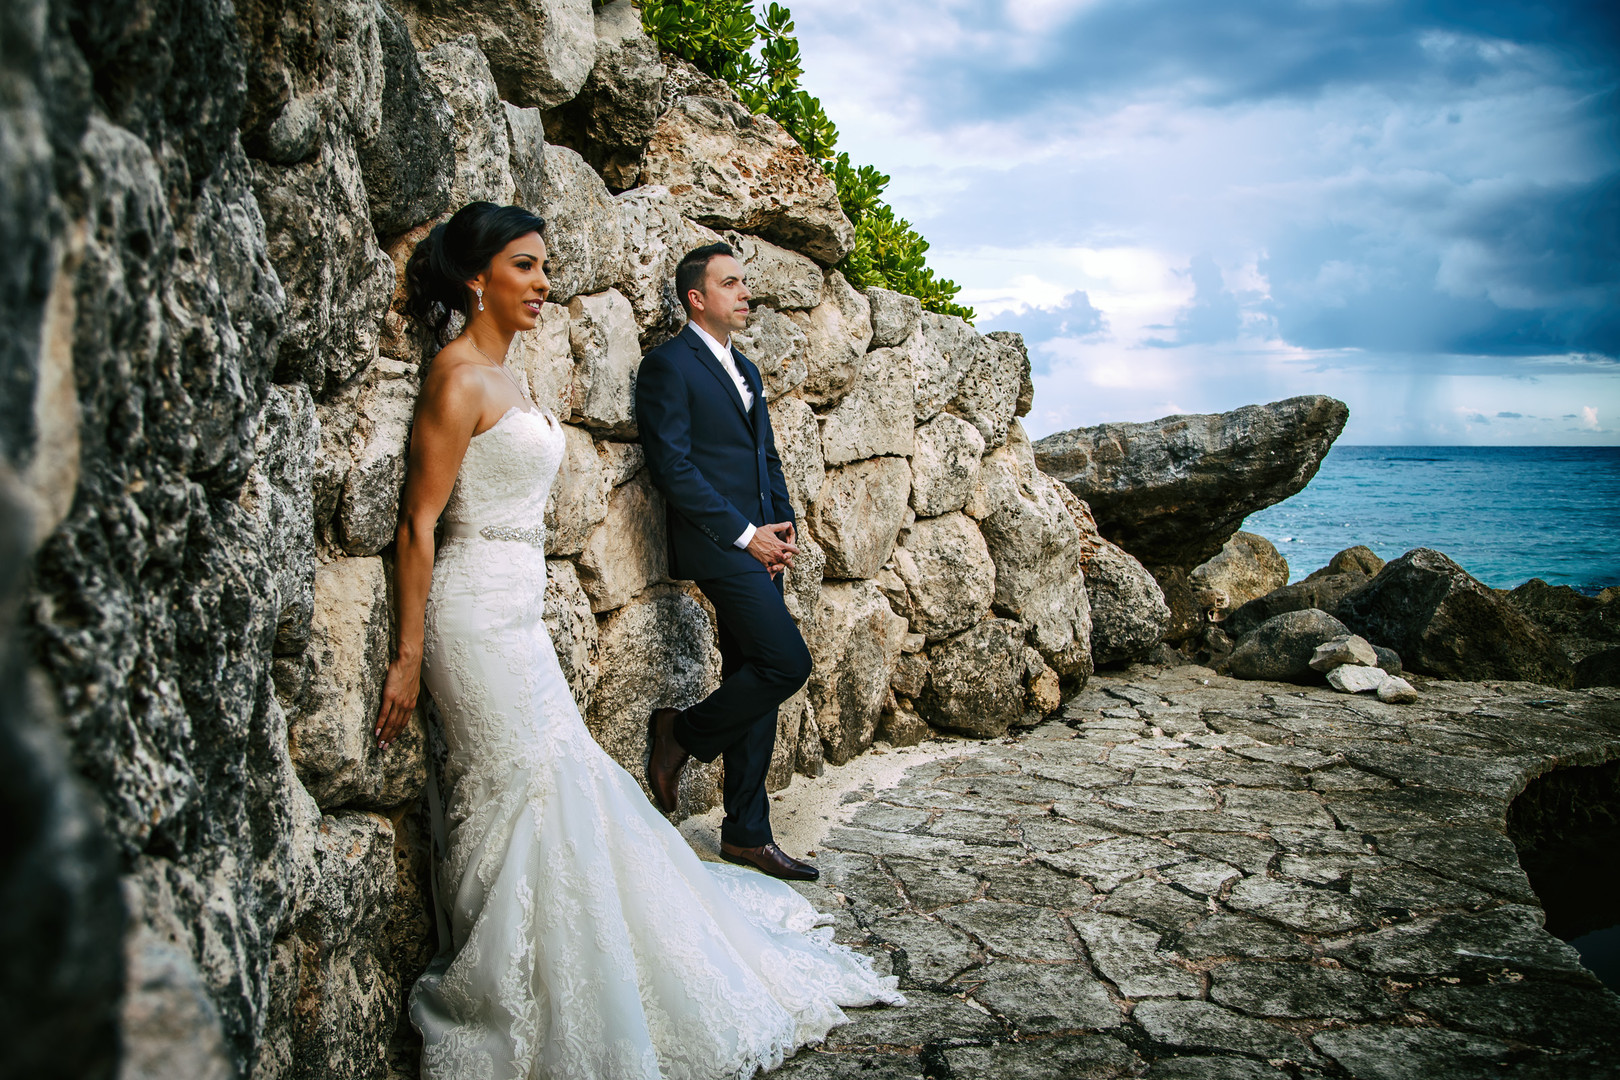 A Stunning Destination Wedding at Xcaret, Riviera Maya, Mexico, Photography by Alan Fresnel Destination Wedding Photographer for Destination Wedding Blog www.adrianaweddings.com